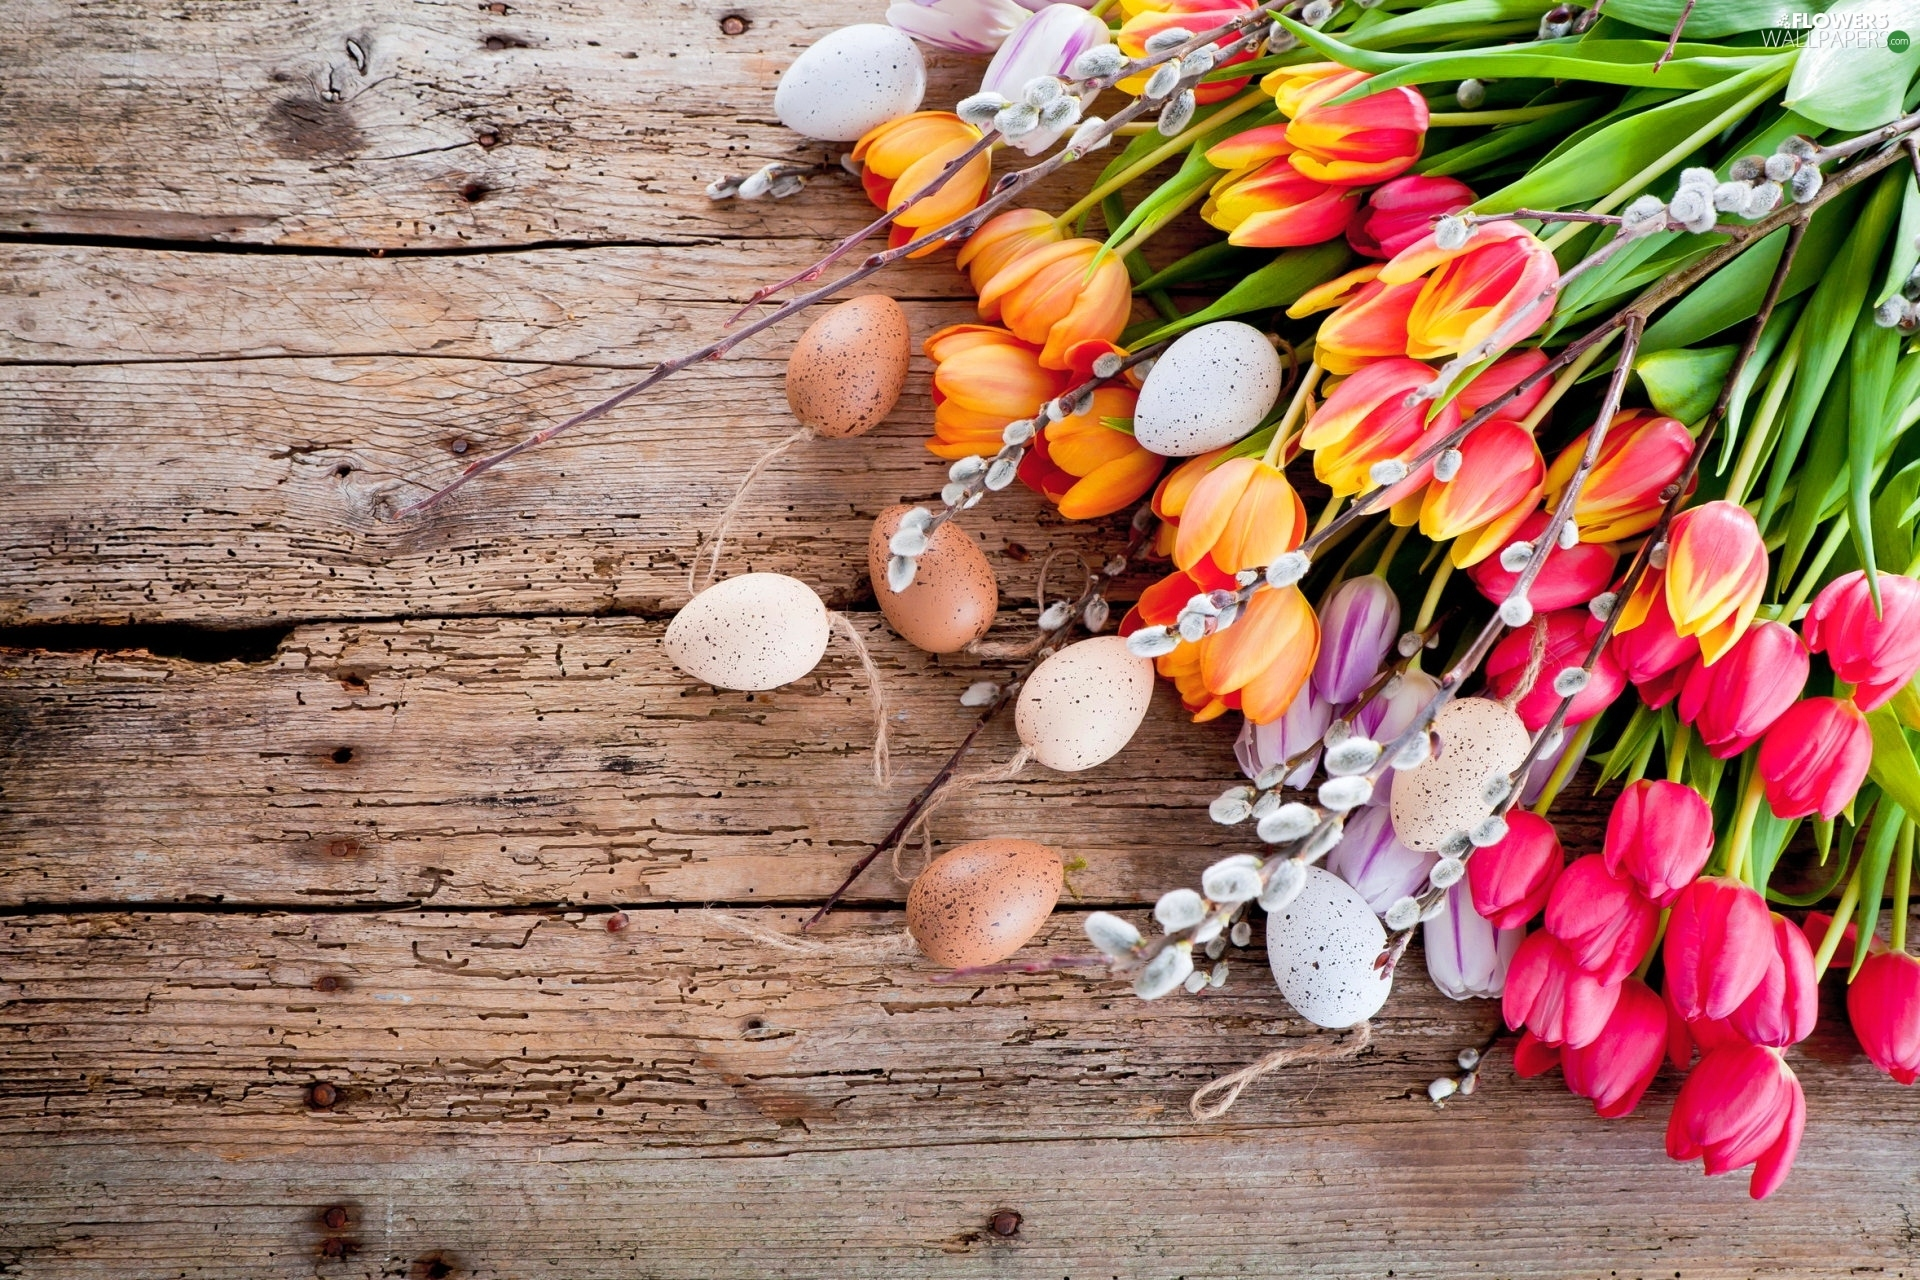 Tulips, database, Easter, eggs, composition